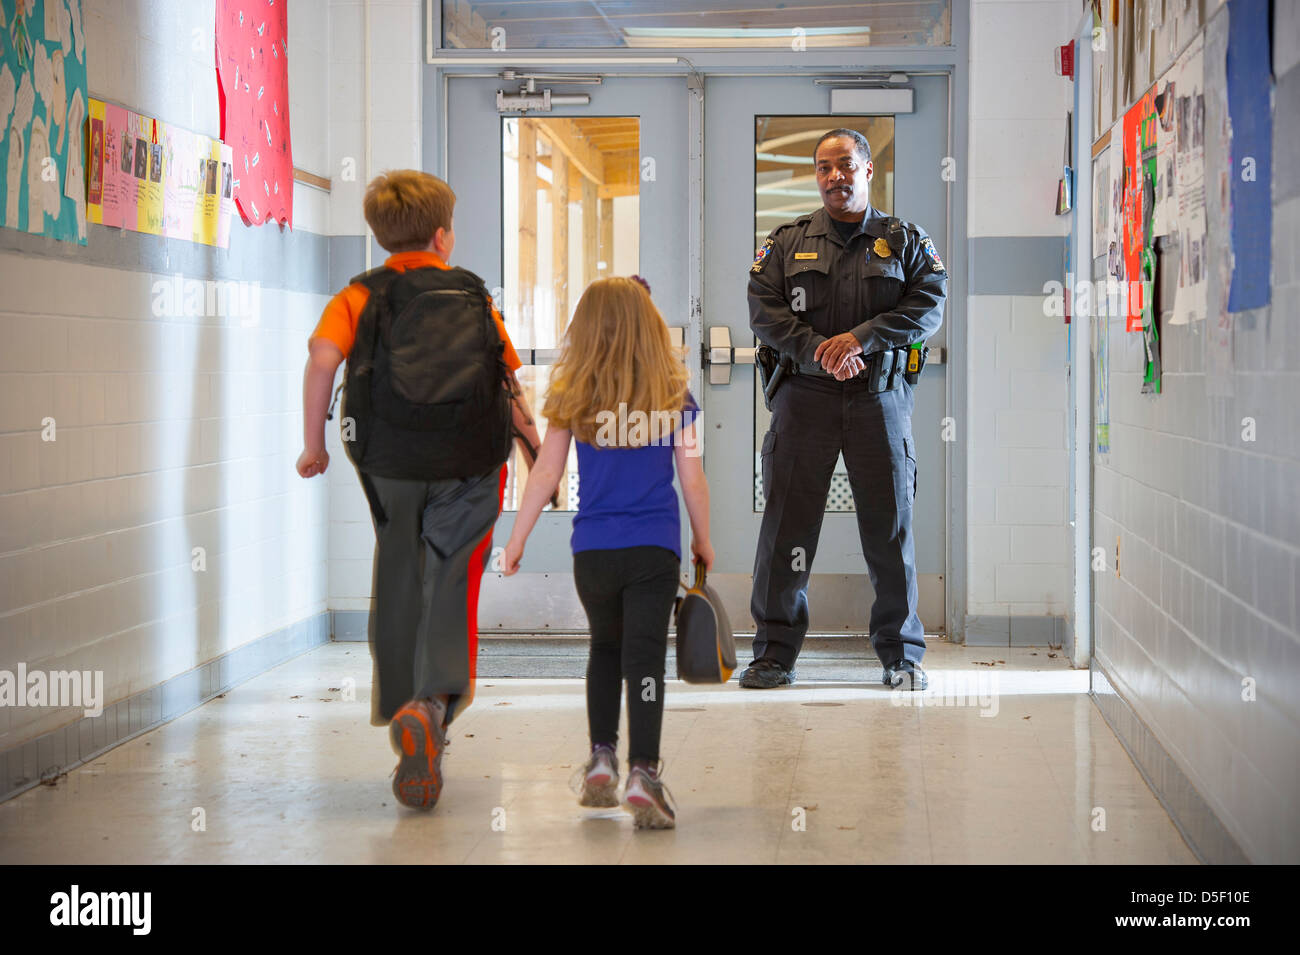 usa-safety-in-public-schools-police-officer-with-boy-and-girl-in-school-D5F10E.jpg